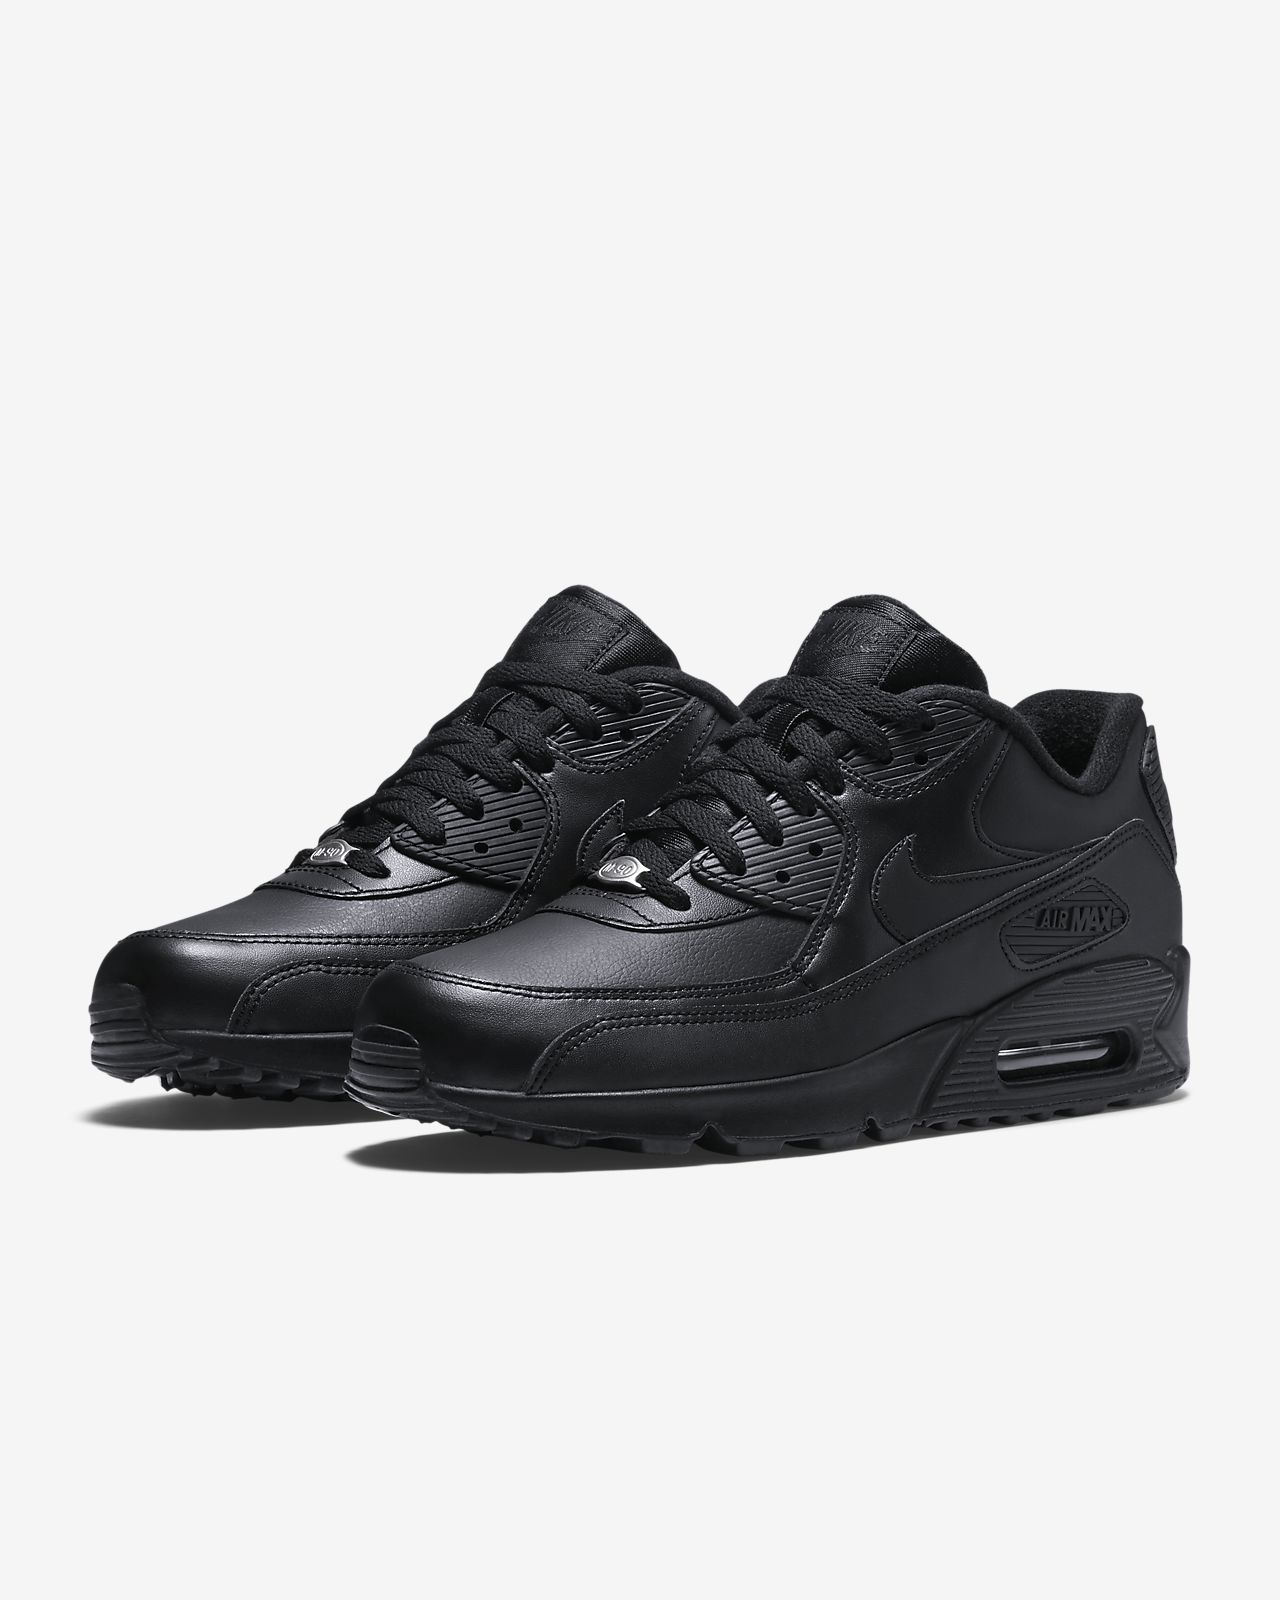 the latest 36e31 2d29d ... Chaussure Nike Air Max 90 Leather pour Homme